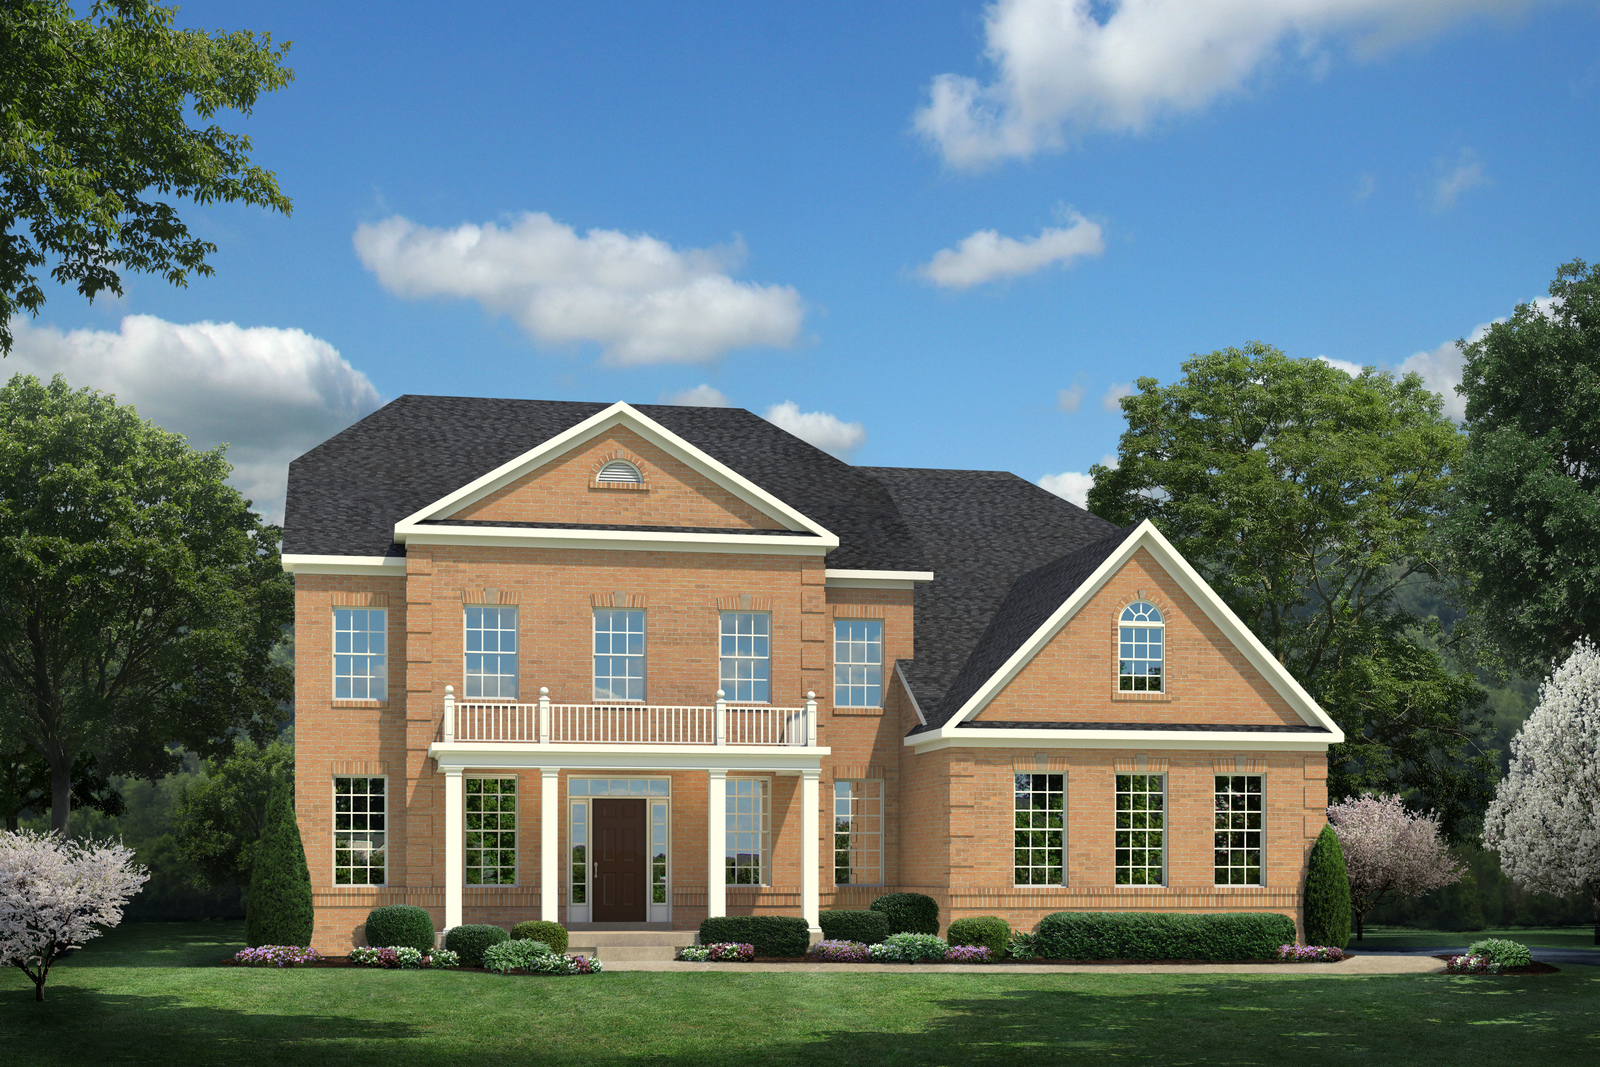 New avalon home model for sale heartland homes for Heartland homes pittsburgh floor plans